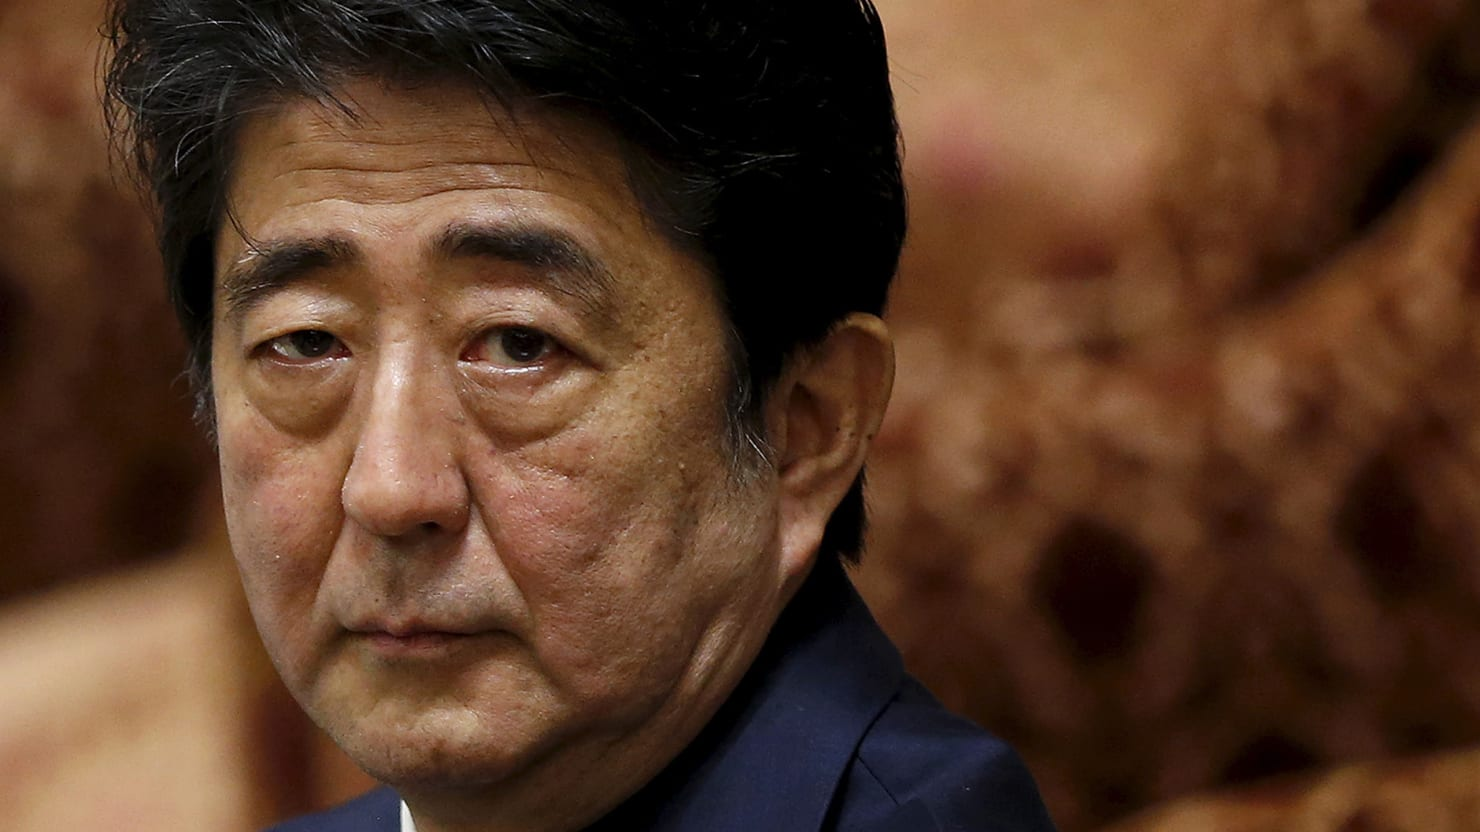 Are These the Last Days of Japan's Prime Minister Abe?